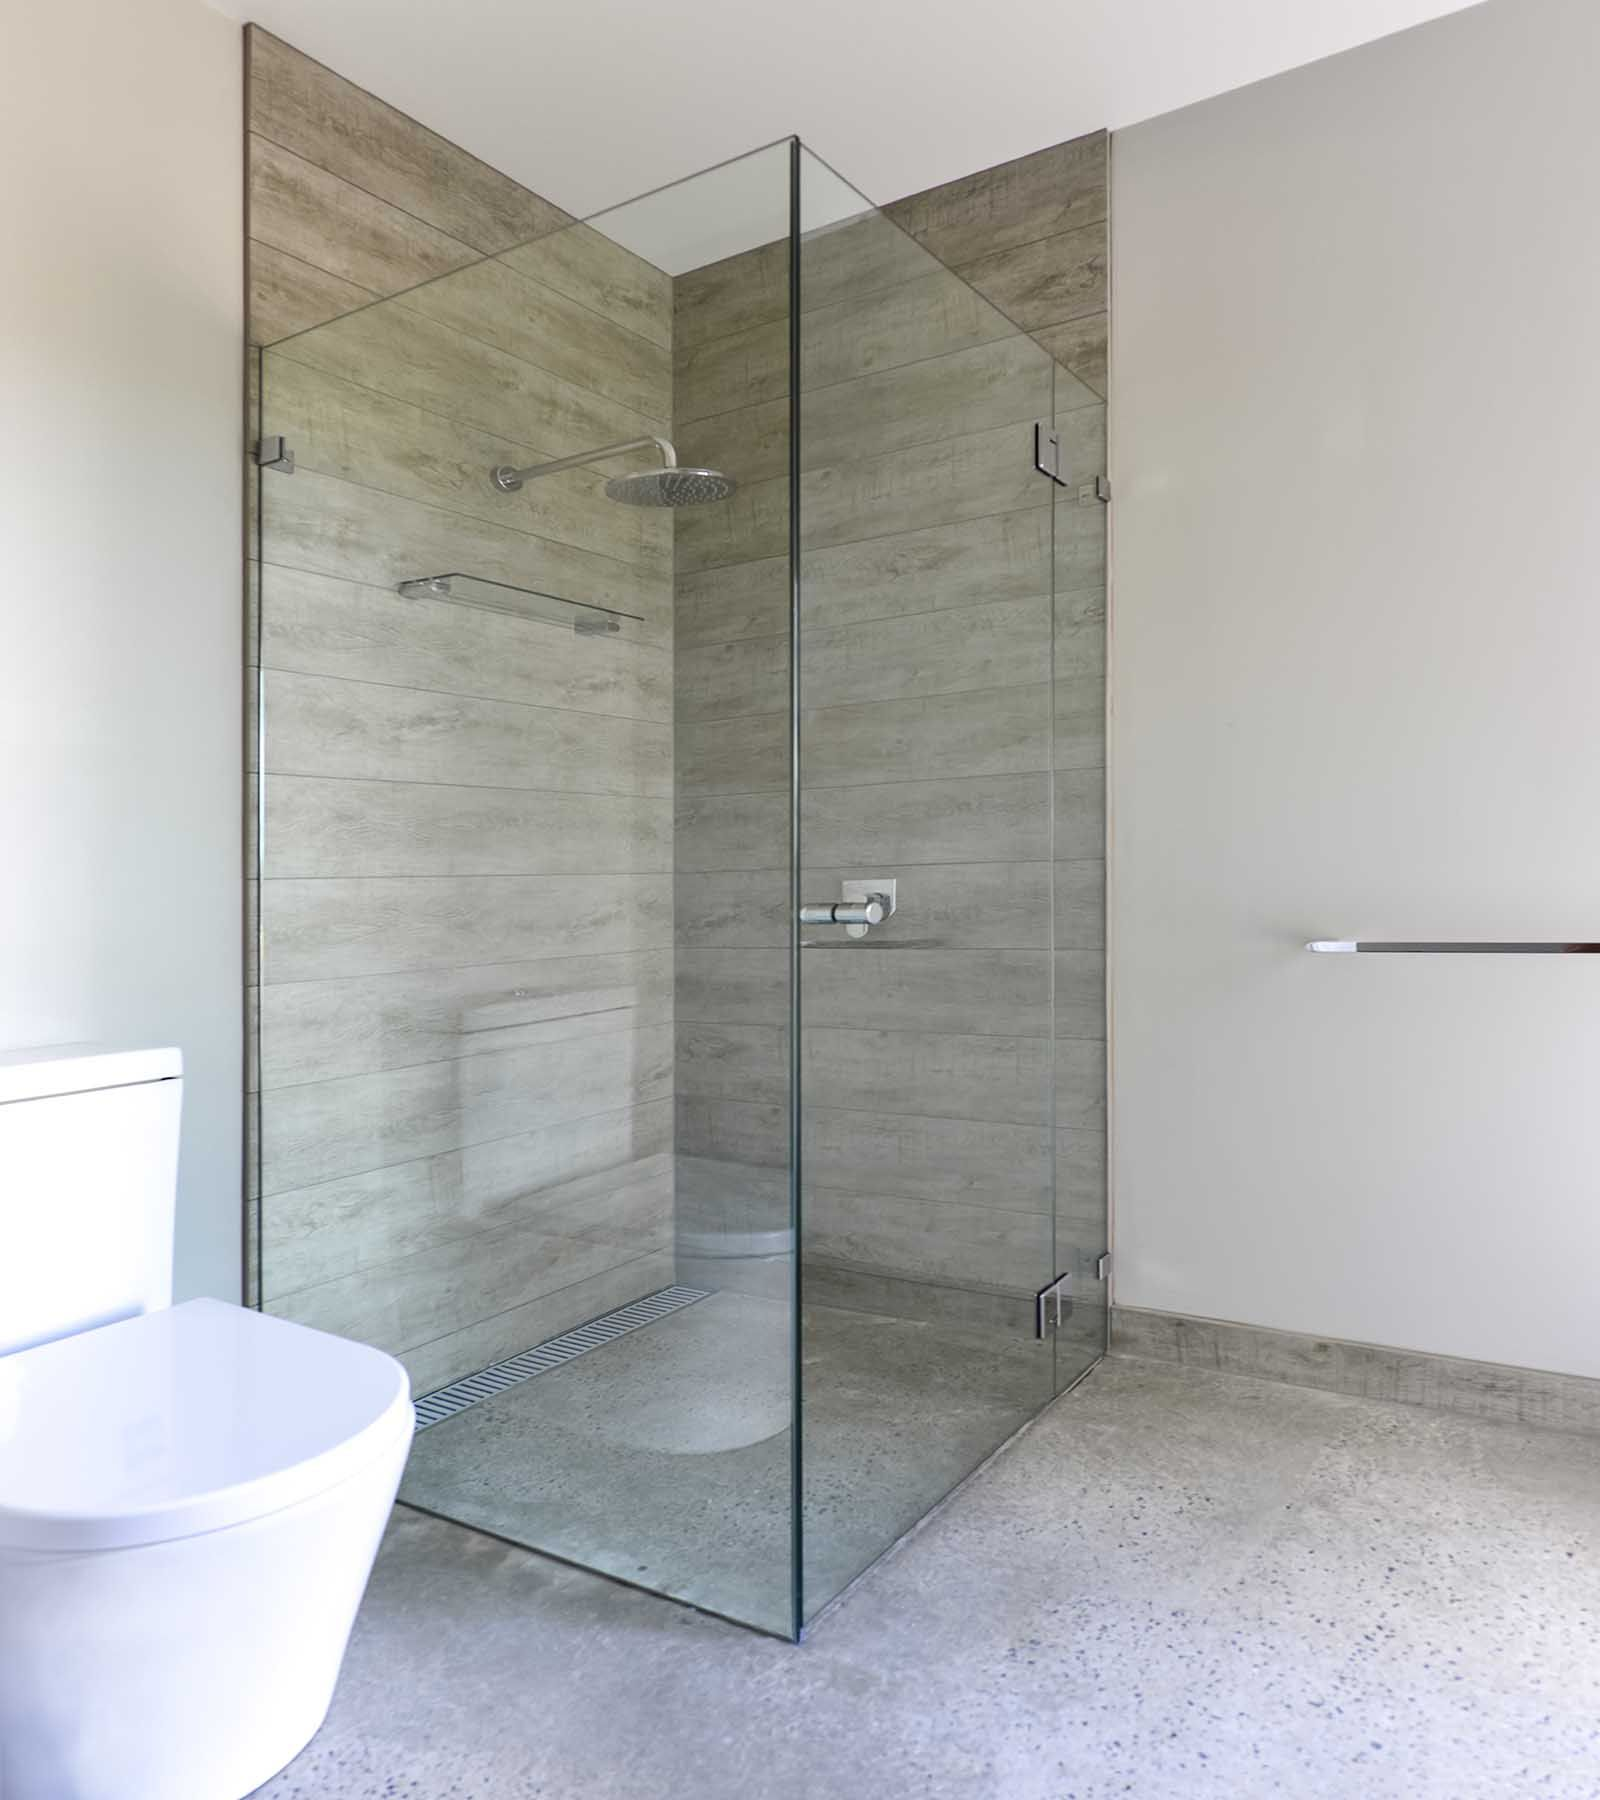 Ensuite Bathroom Fixtures atmos™ - frameless shower screen - ensuite / bathroom hinged glass